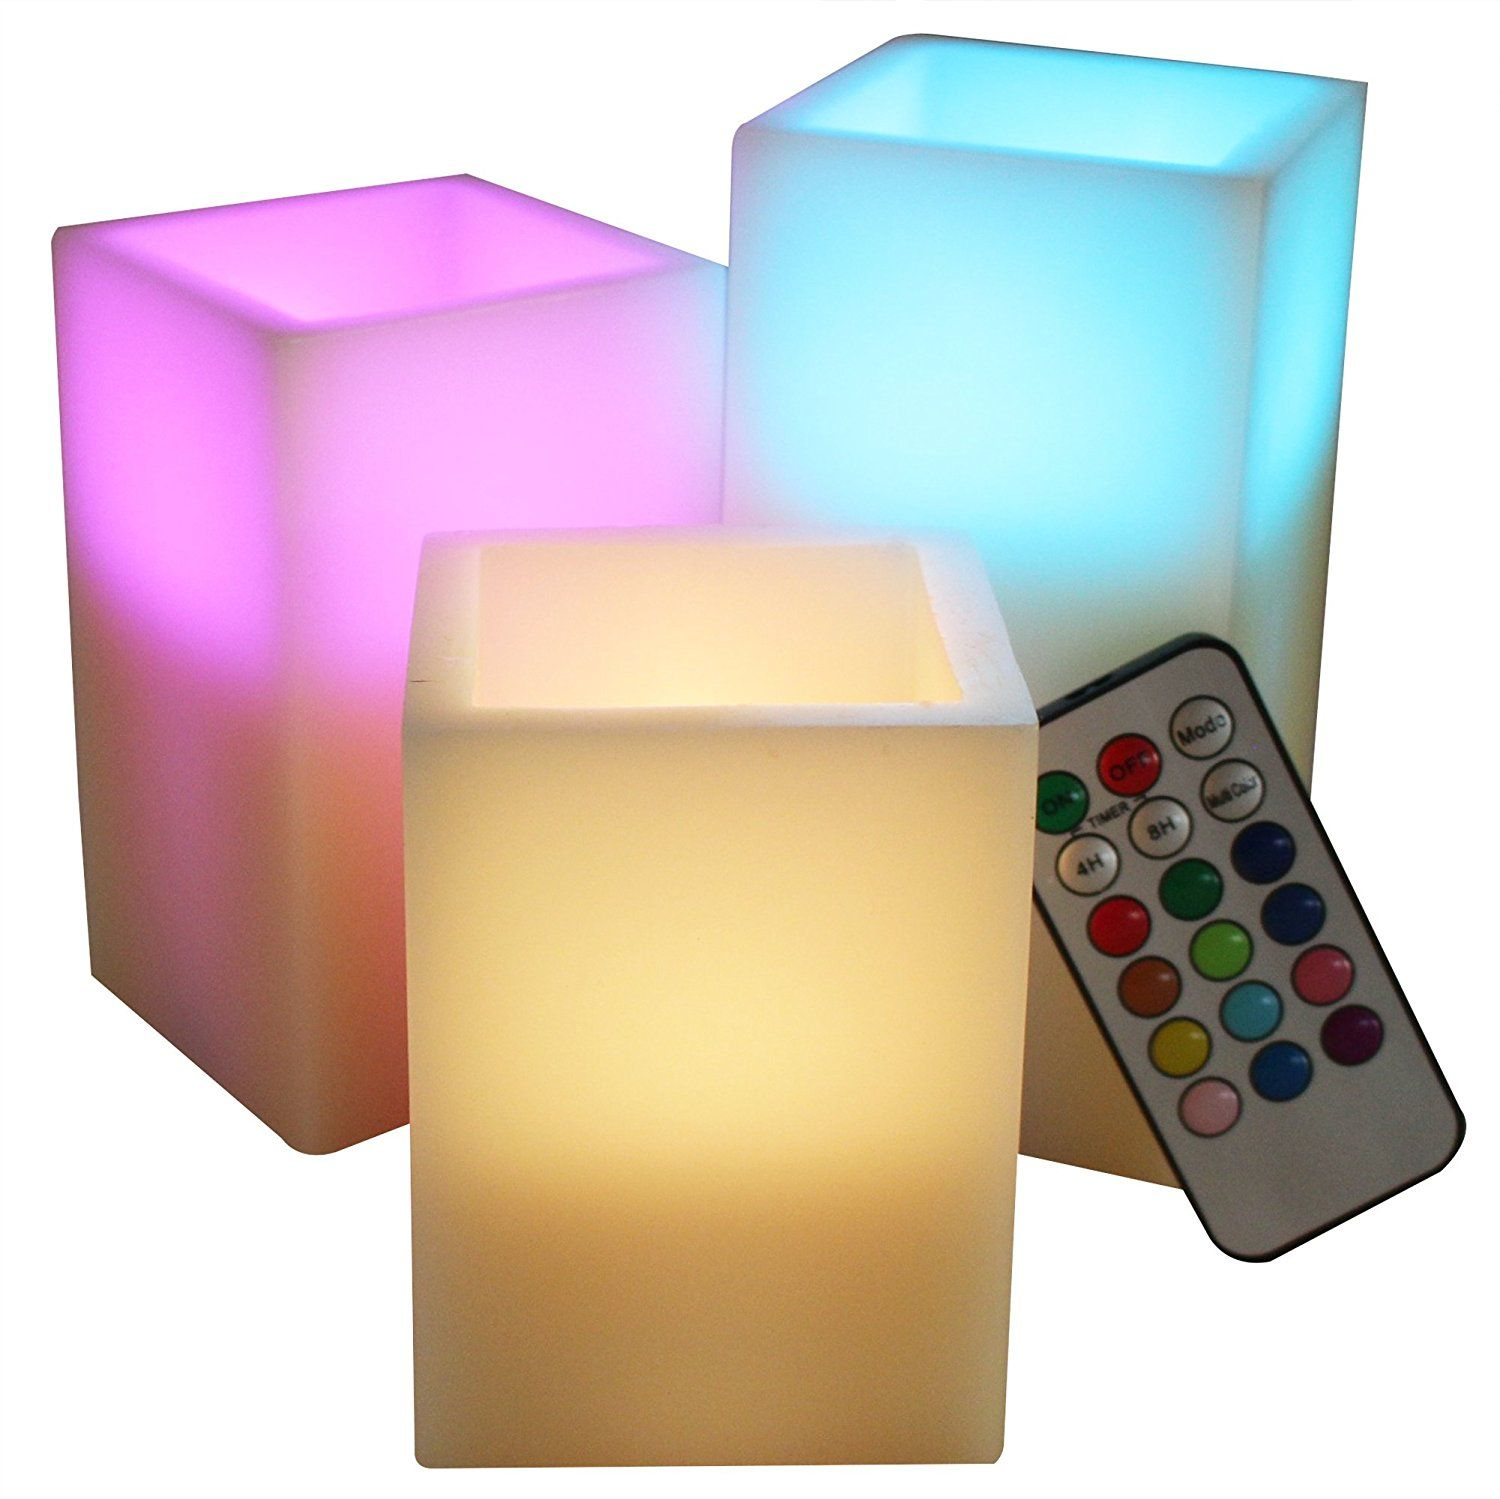 Led lytes square flameless candles color changing remote control